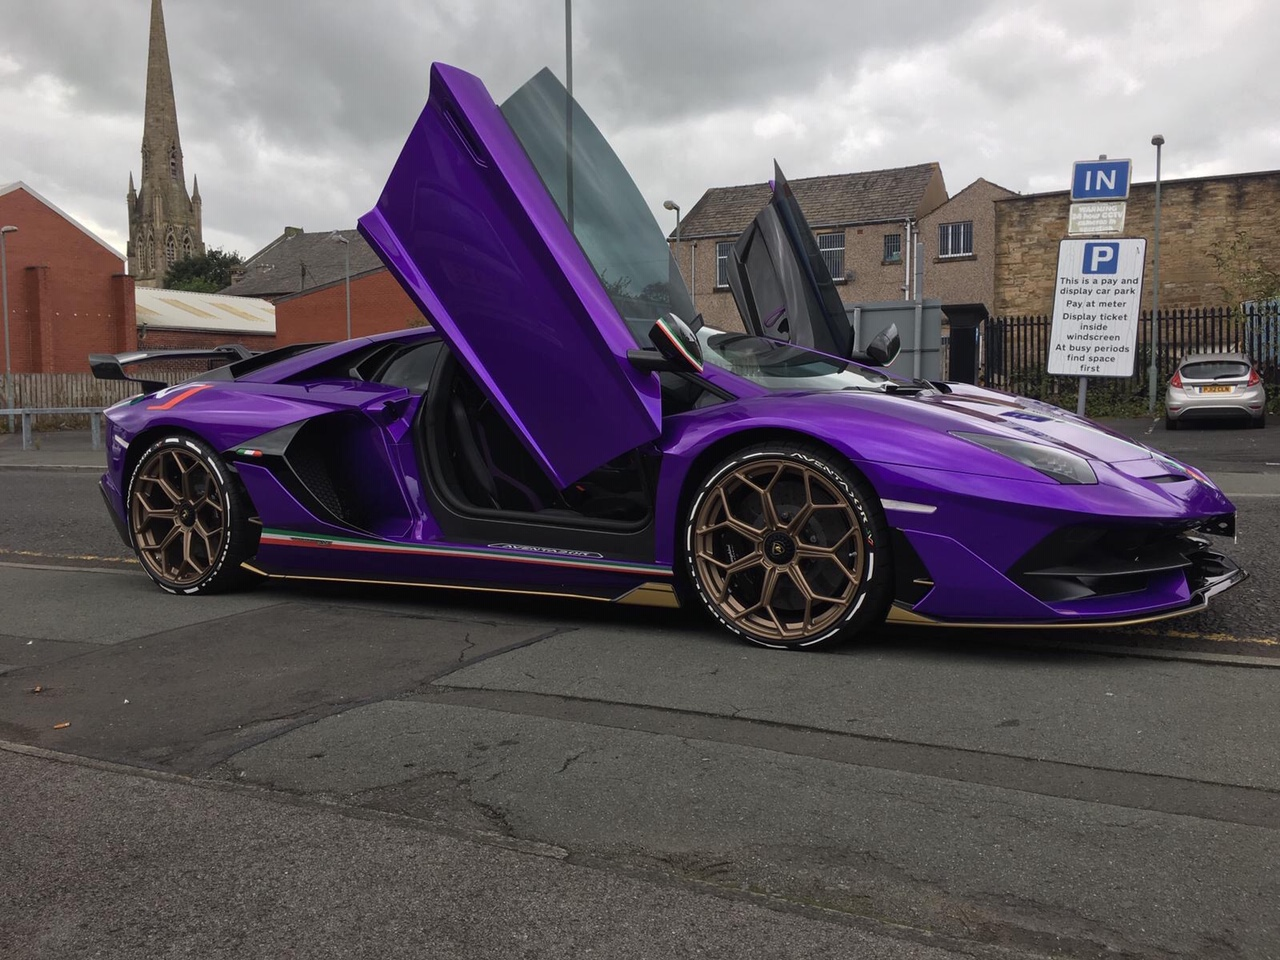 2019 lamborghini aventador svj for sale viola parsifae supercars for sale 2019 lamborghini aventador svj for sale